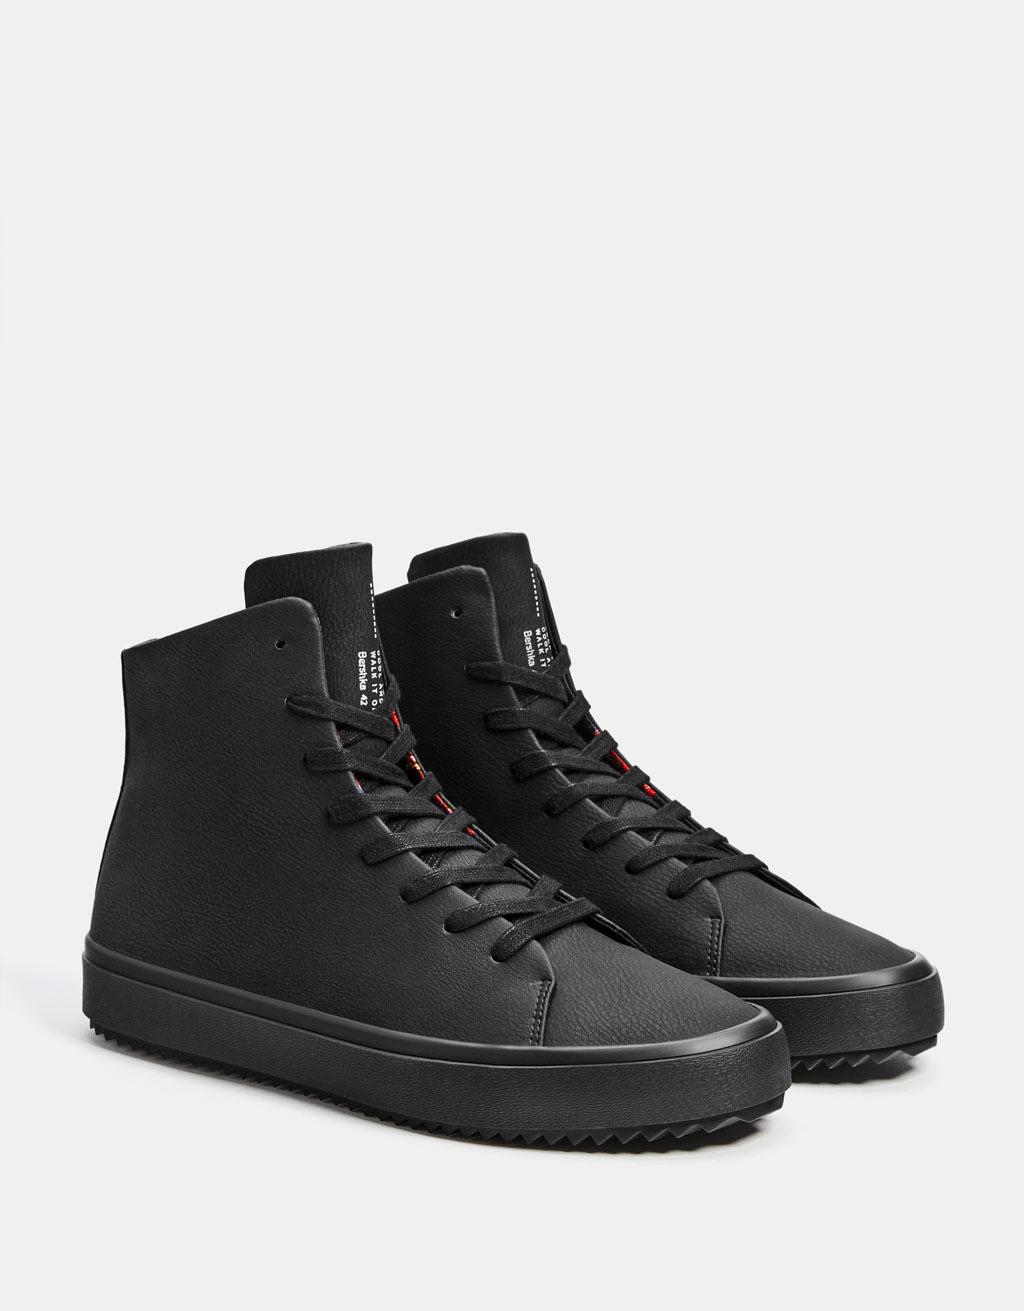 Men's high top trainers